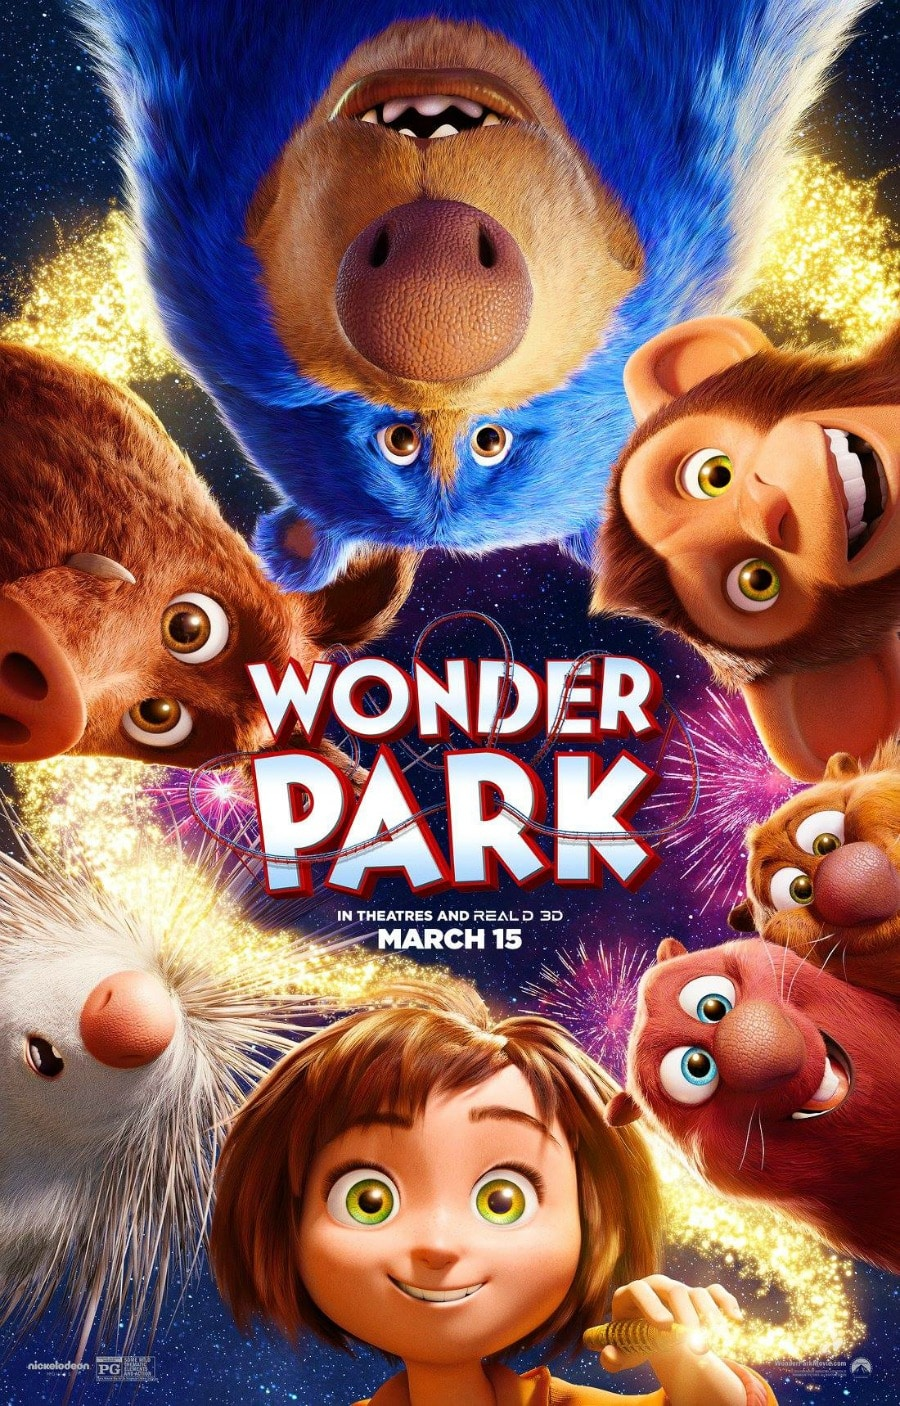 Wonder Park Movie Hits Theaters March 15